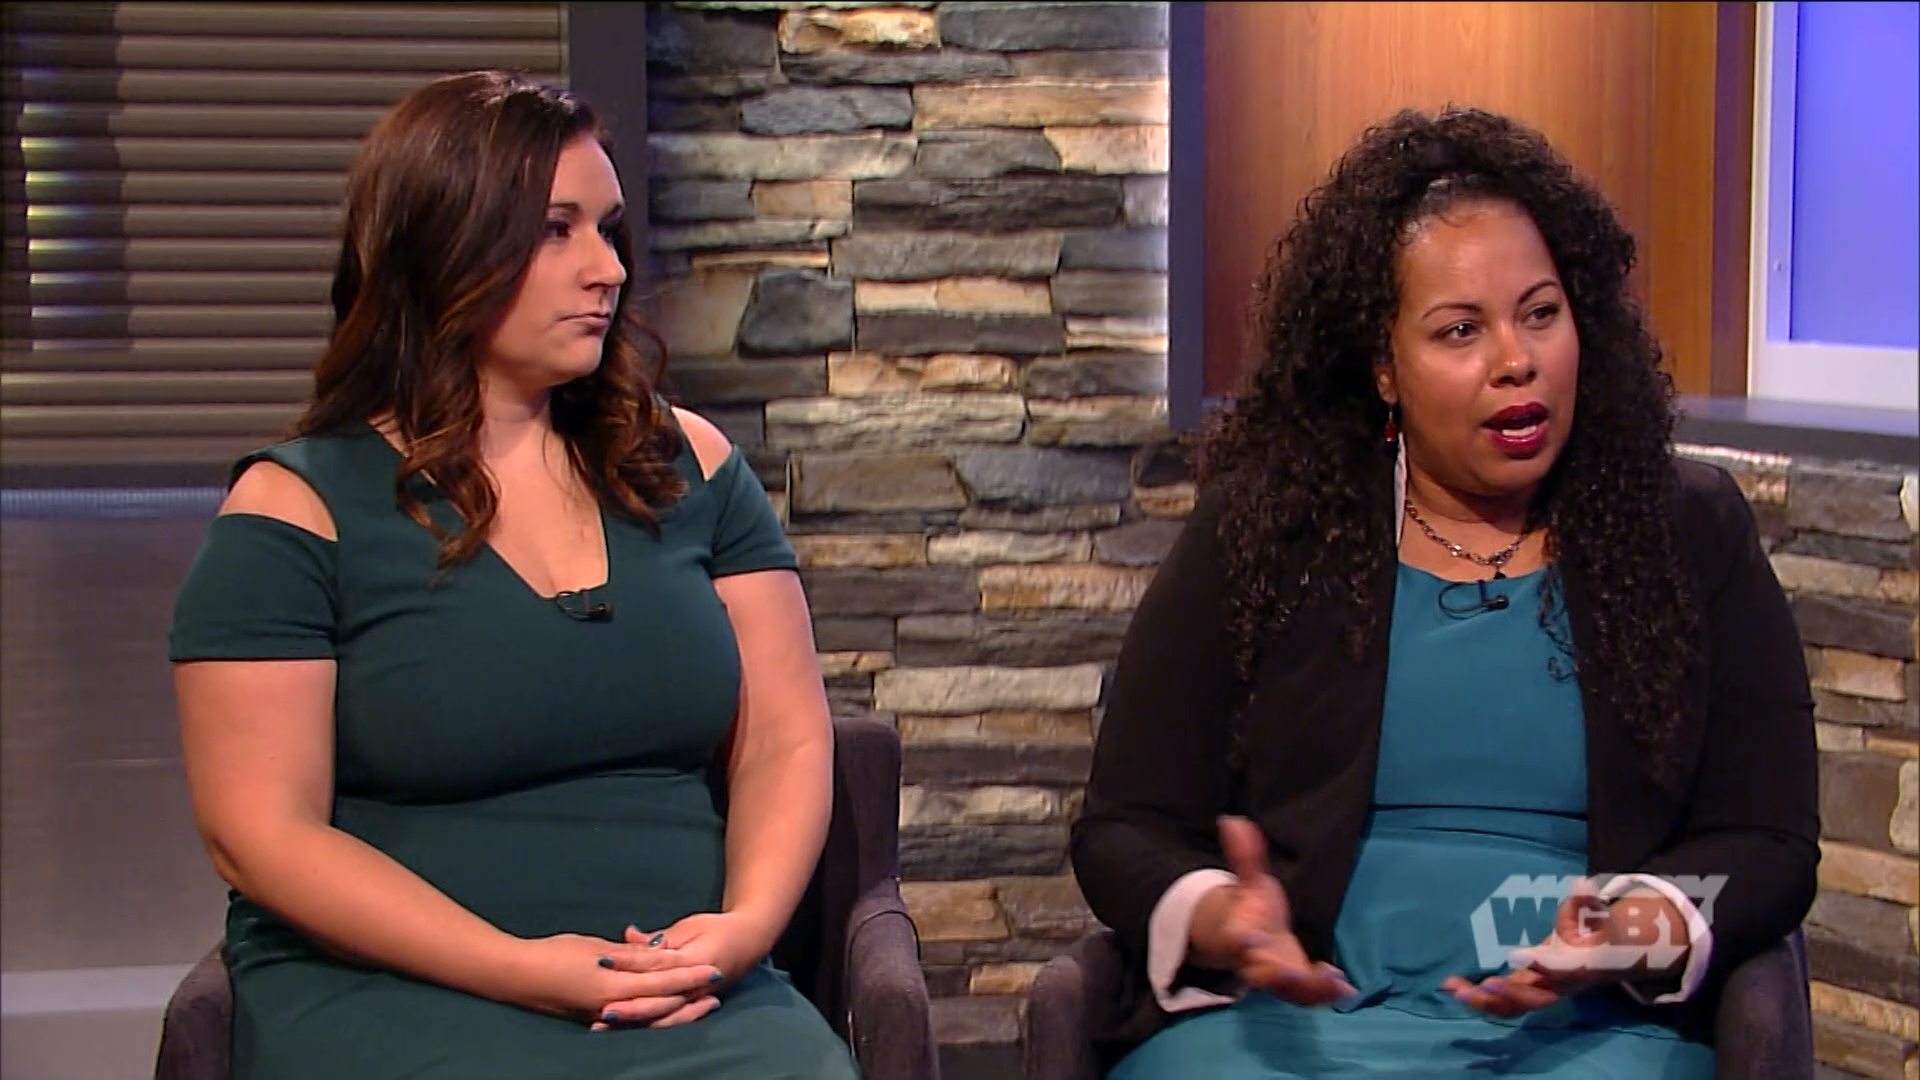 WATCH: Gandara Center's Jade Rivera-McFarlin & Corinne Dumont share how the organization is assisting with earthquake relief efforts in Puerto Rico.